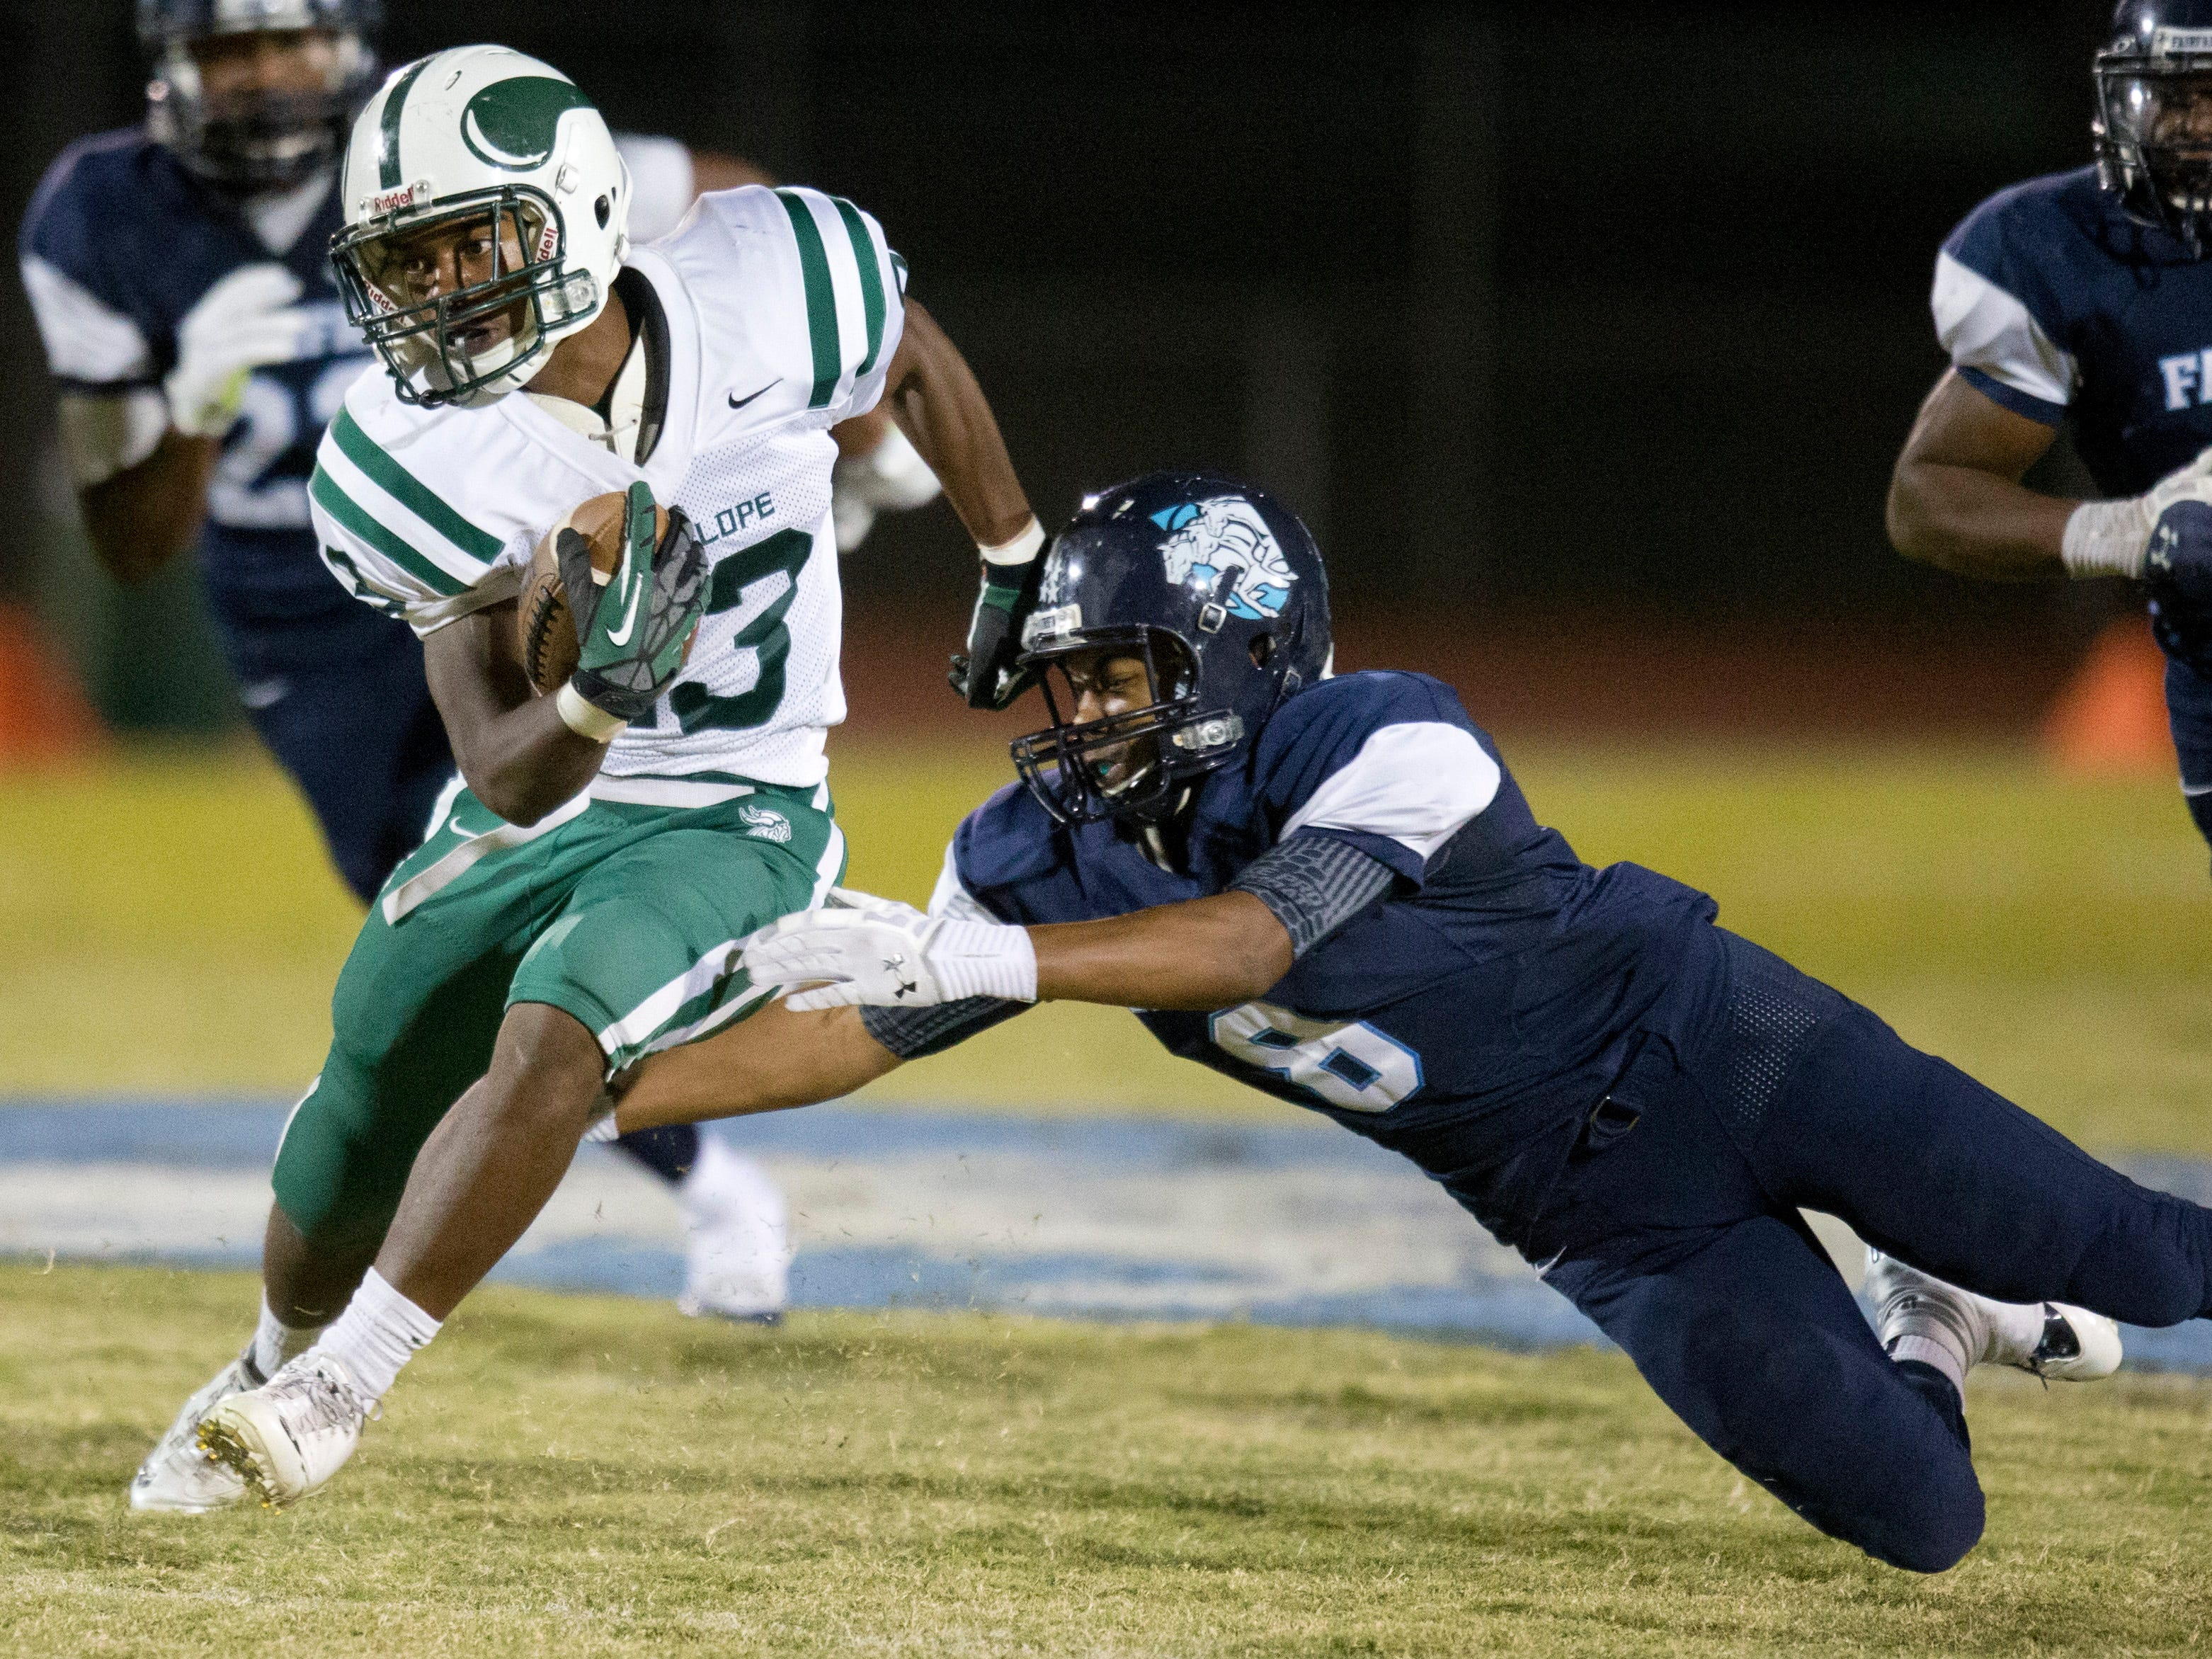 PNI0928-spt betty fairfax 0925130313tlb -- Phoenix Sunnyslope's Tim Fryson gets past Betty Fairfax's Deric Cameron during Friday's football game in Laveen. Pat Shannahan/The Arizona Republic